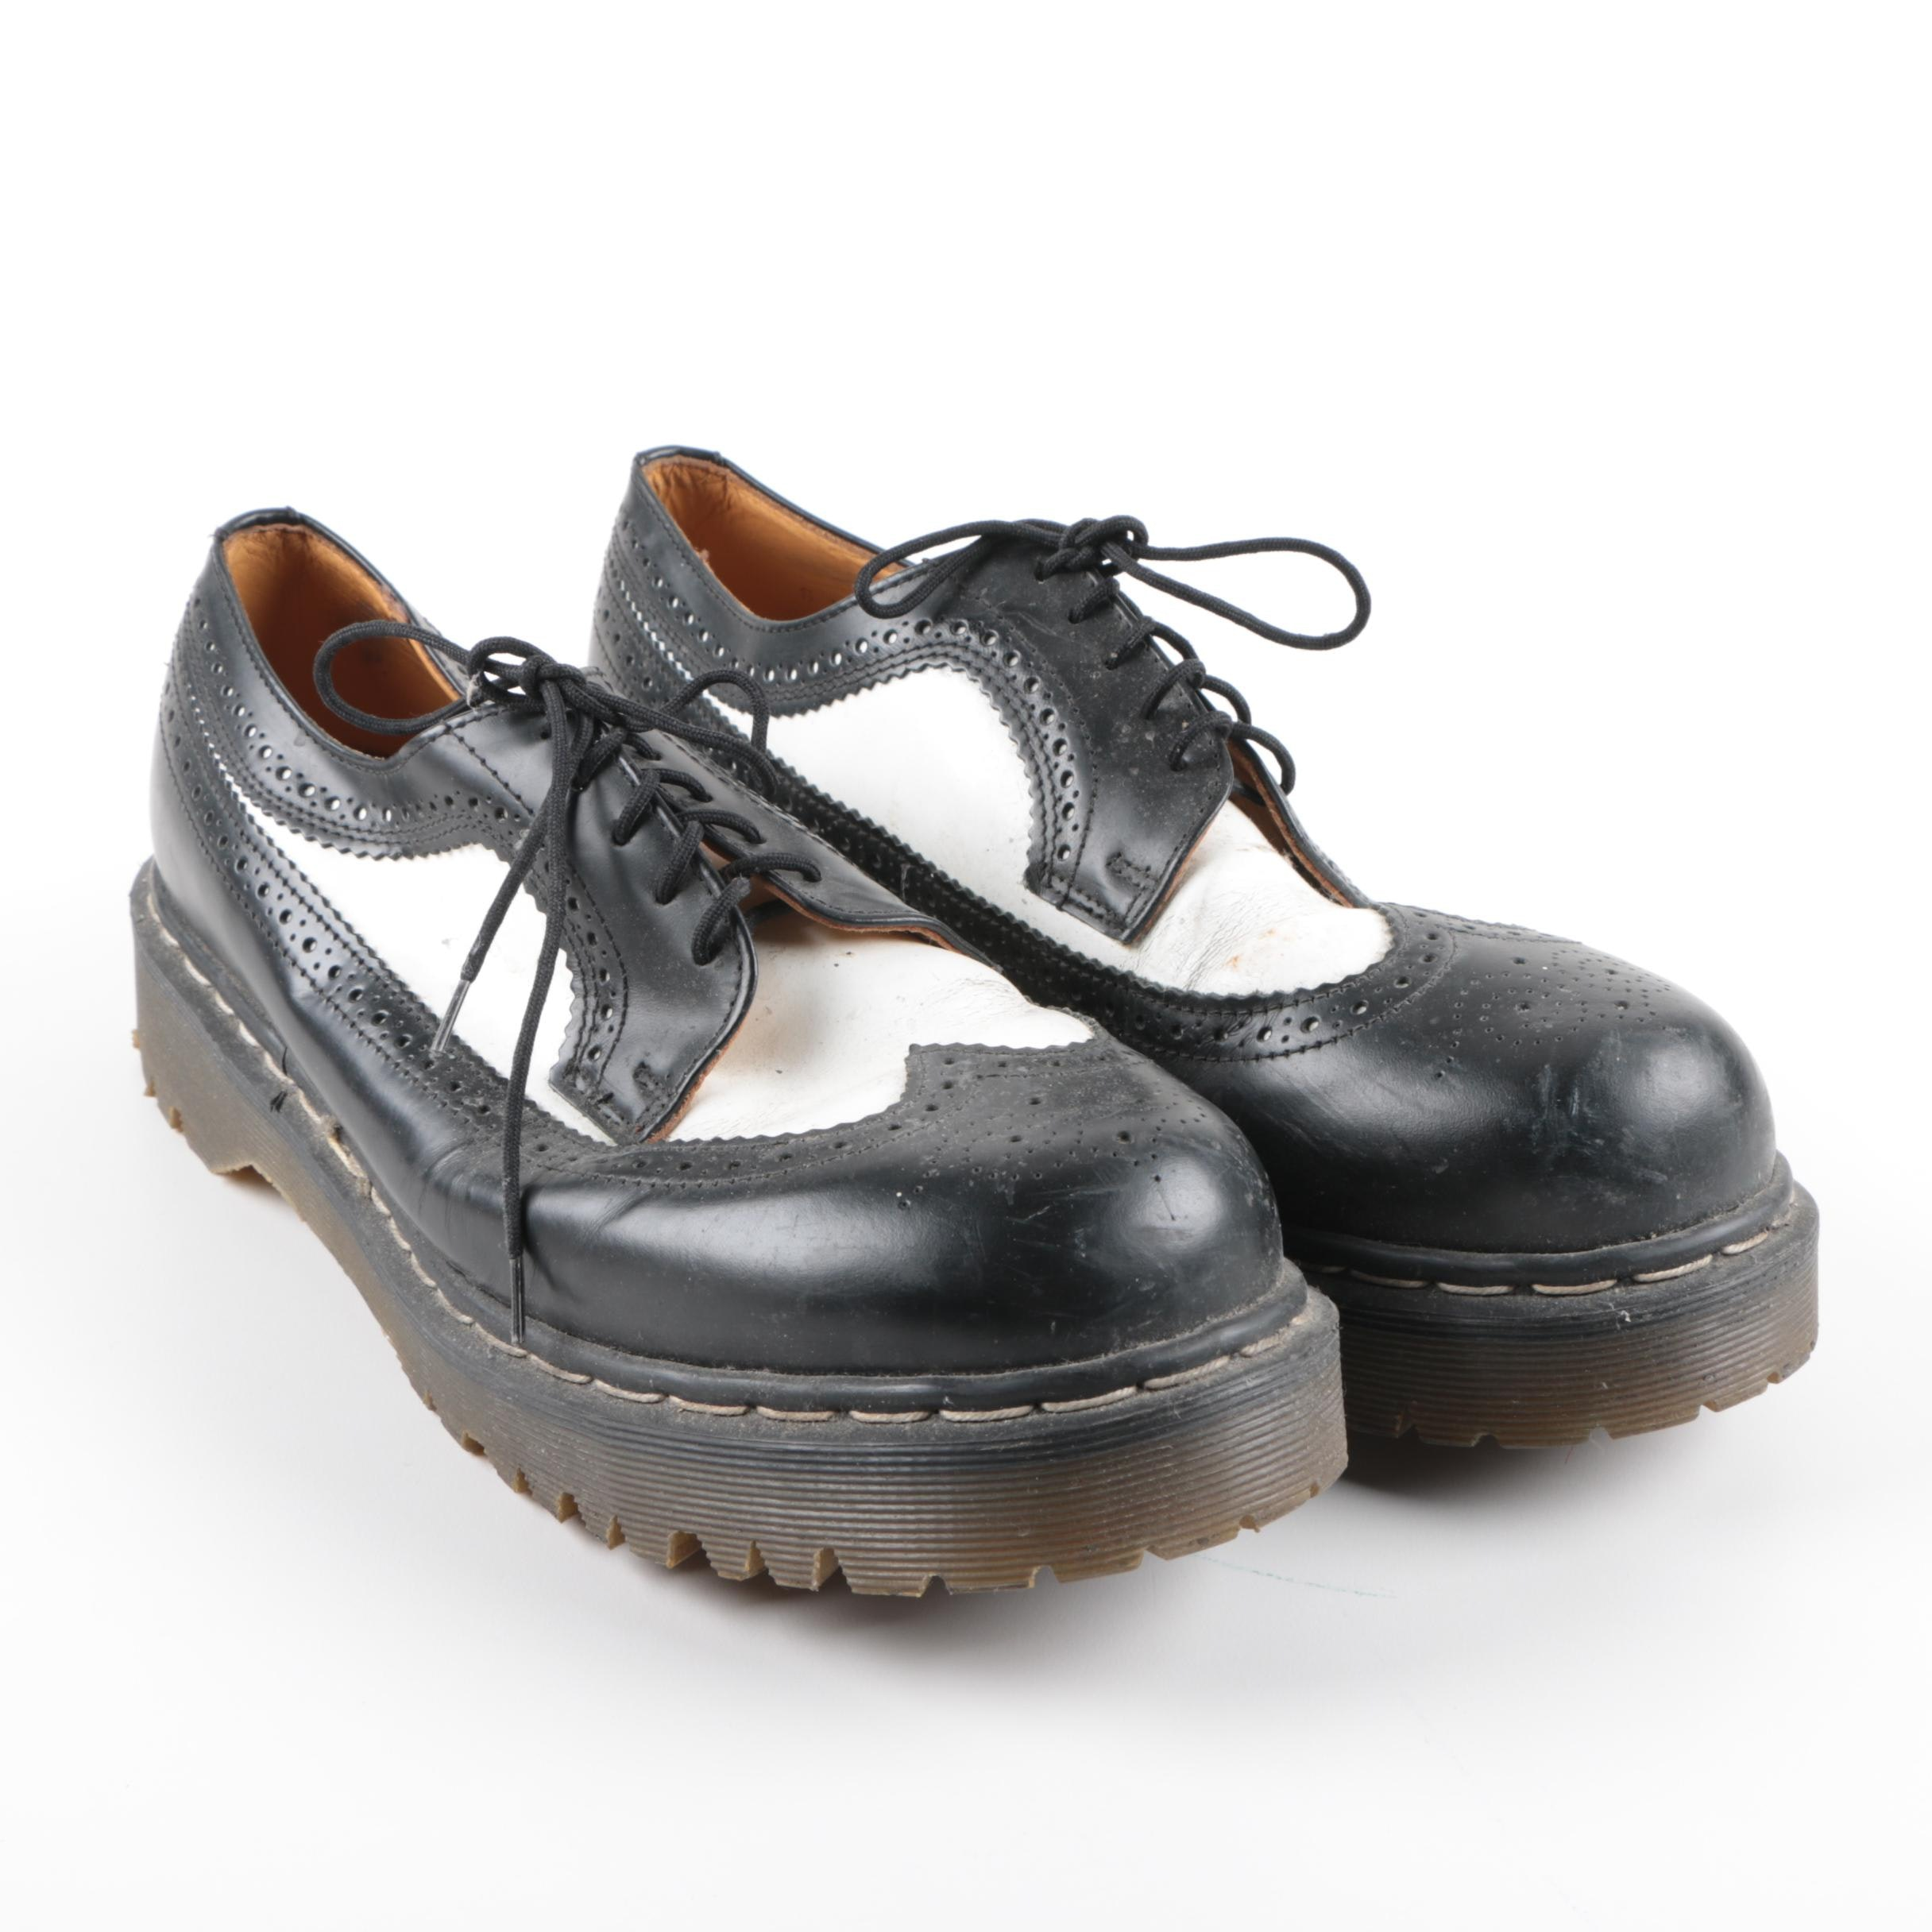 Men's Dr. Martens Black and White Leather Wingtips